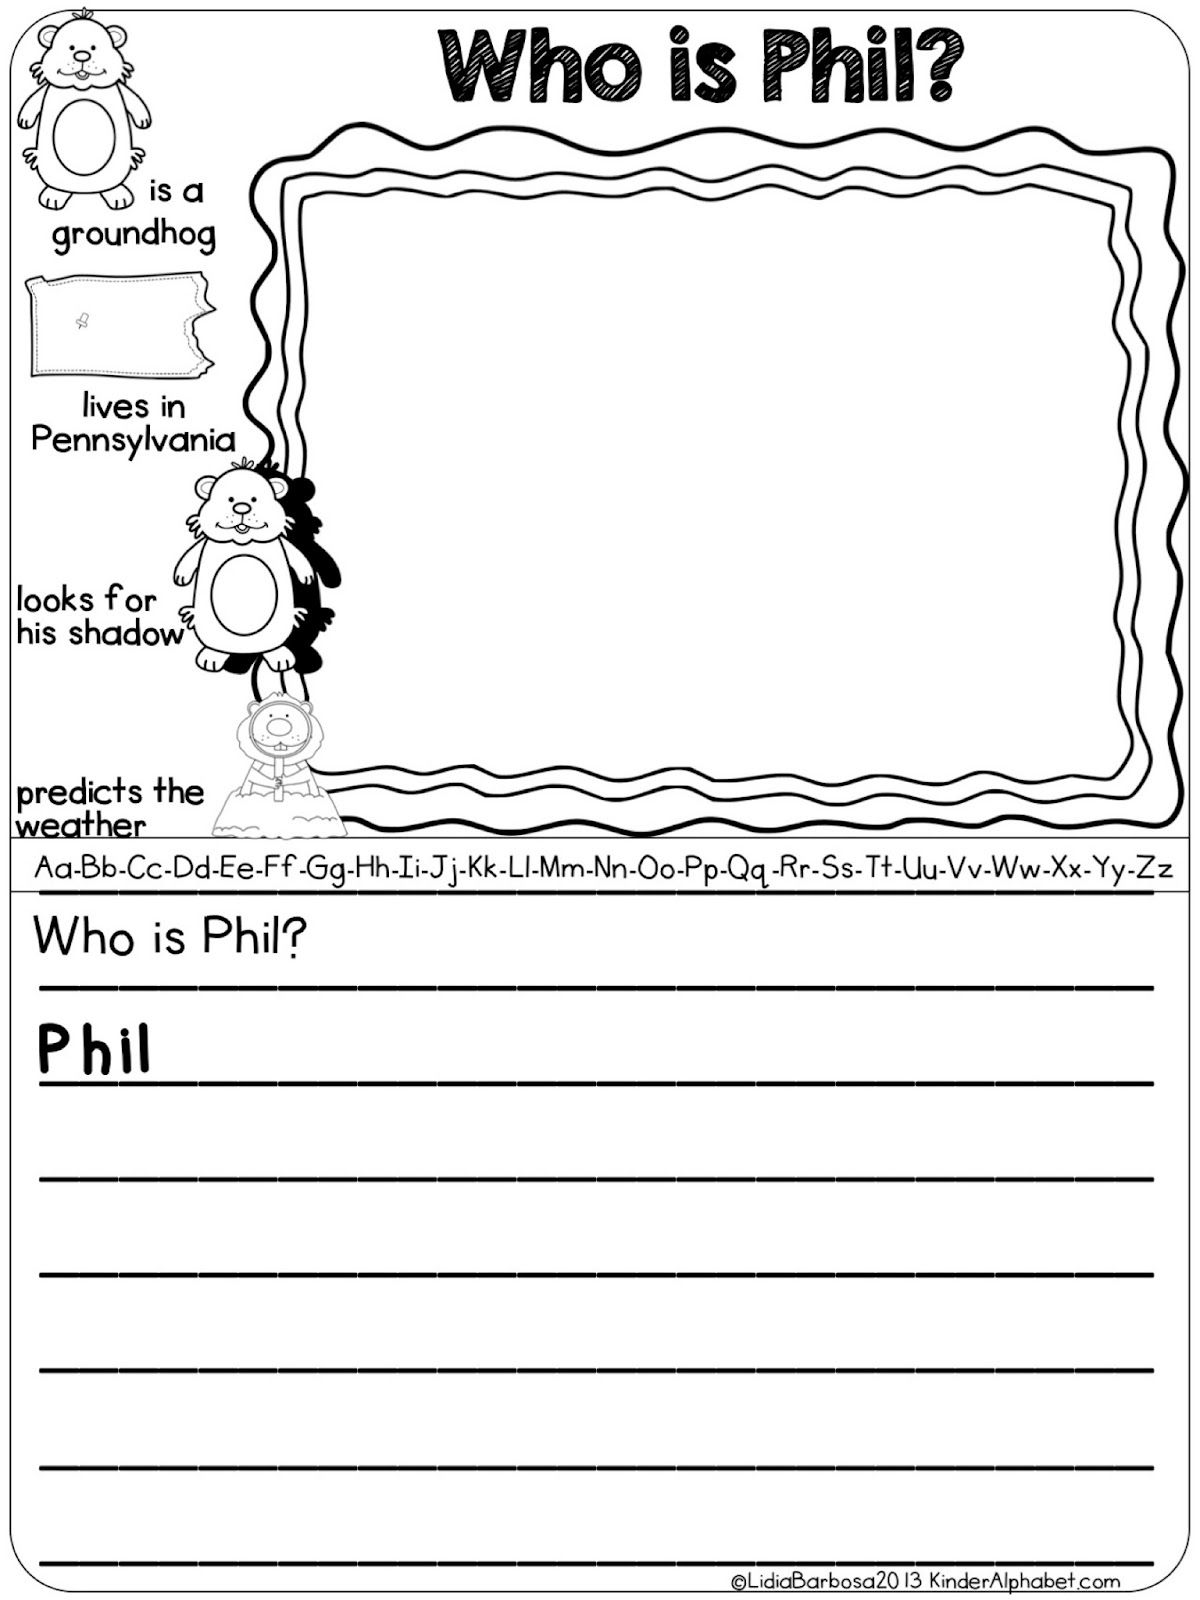 Groundhog Day Activities Free Who Is Phil Writing